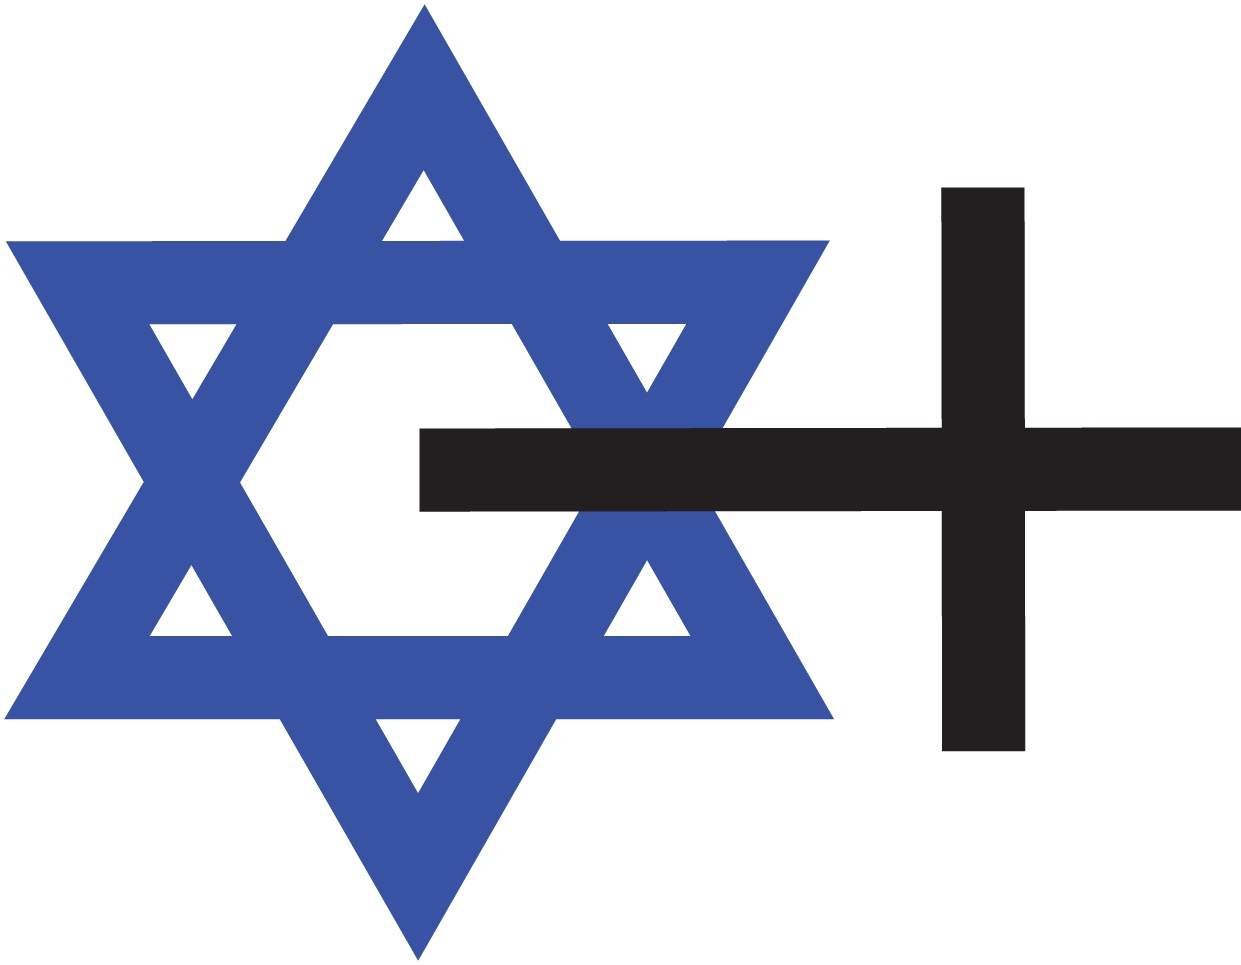 The sound a doggy makes half jewish its like being bisexual but this icon actually describes most judeo christian relations over time biocorpaavc Images